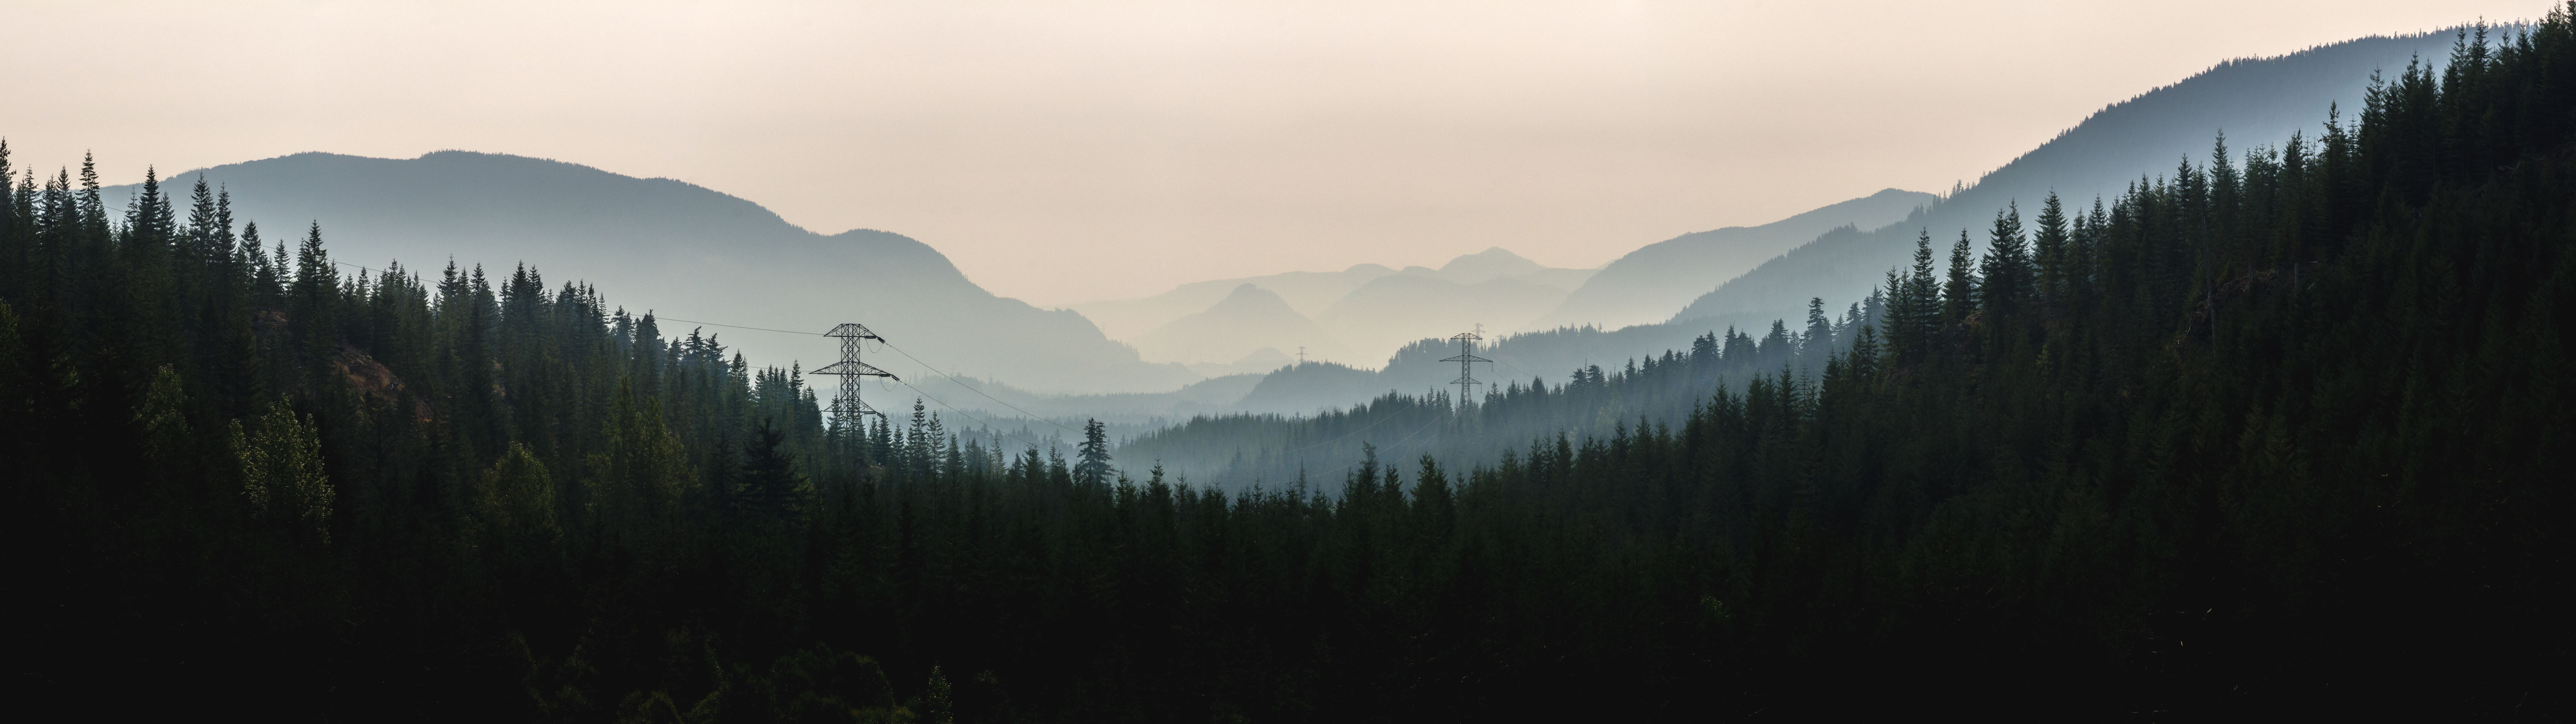 Smoke-filled Snoqualmie Valley